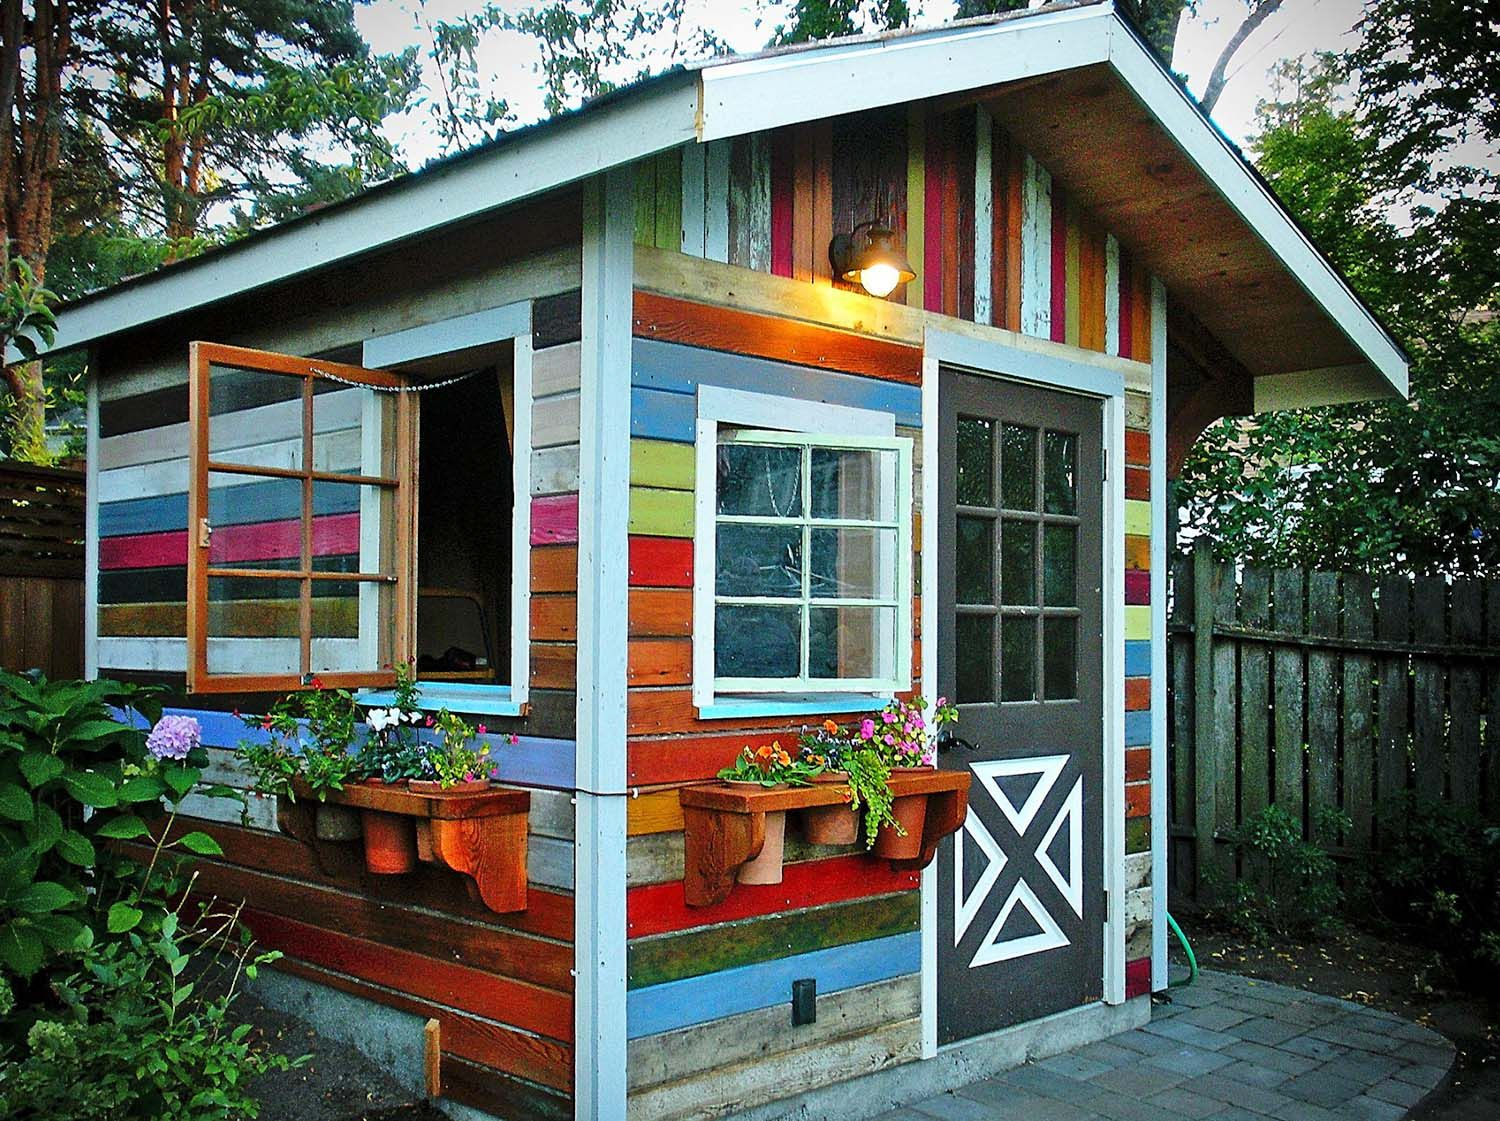 40 Simply amazing garden shed ideas 40